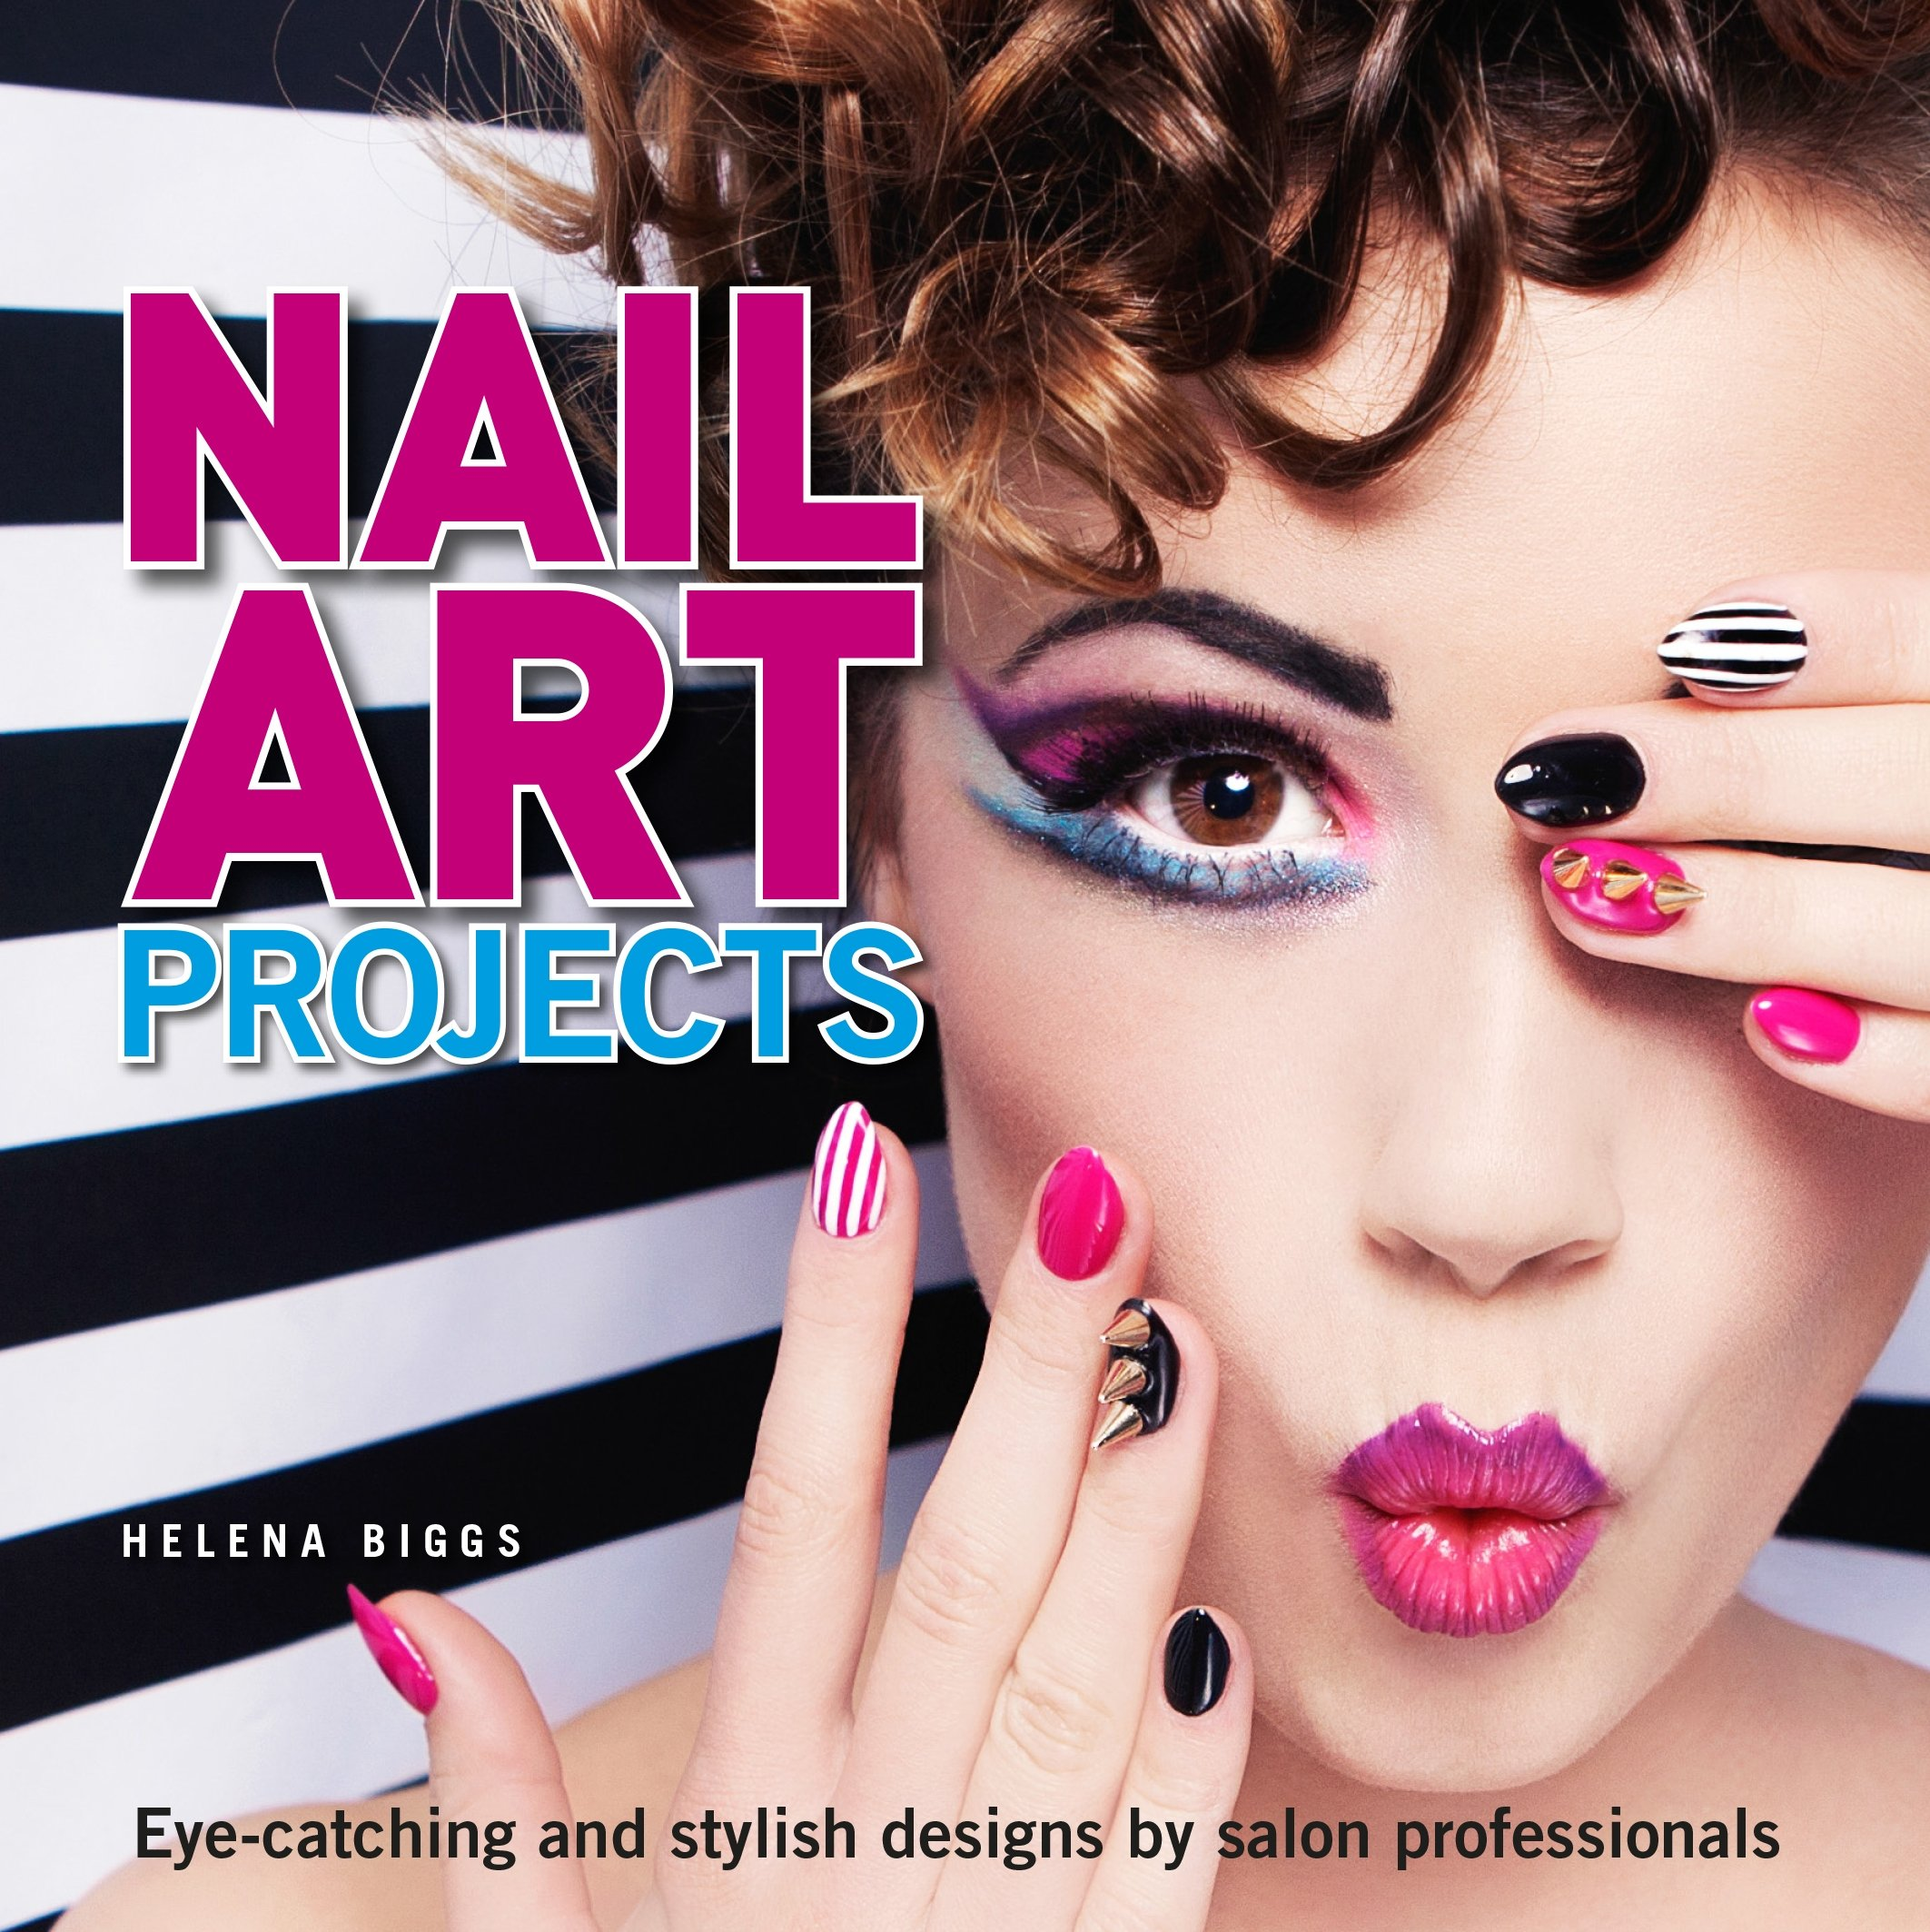 Nail Art Projects: Eye-Catching and Stylish Designs by Salon Professionals PDF